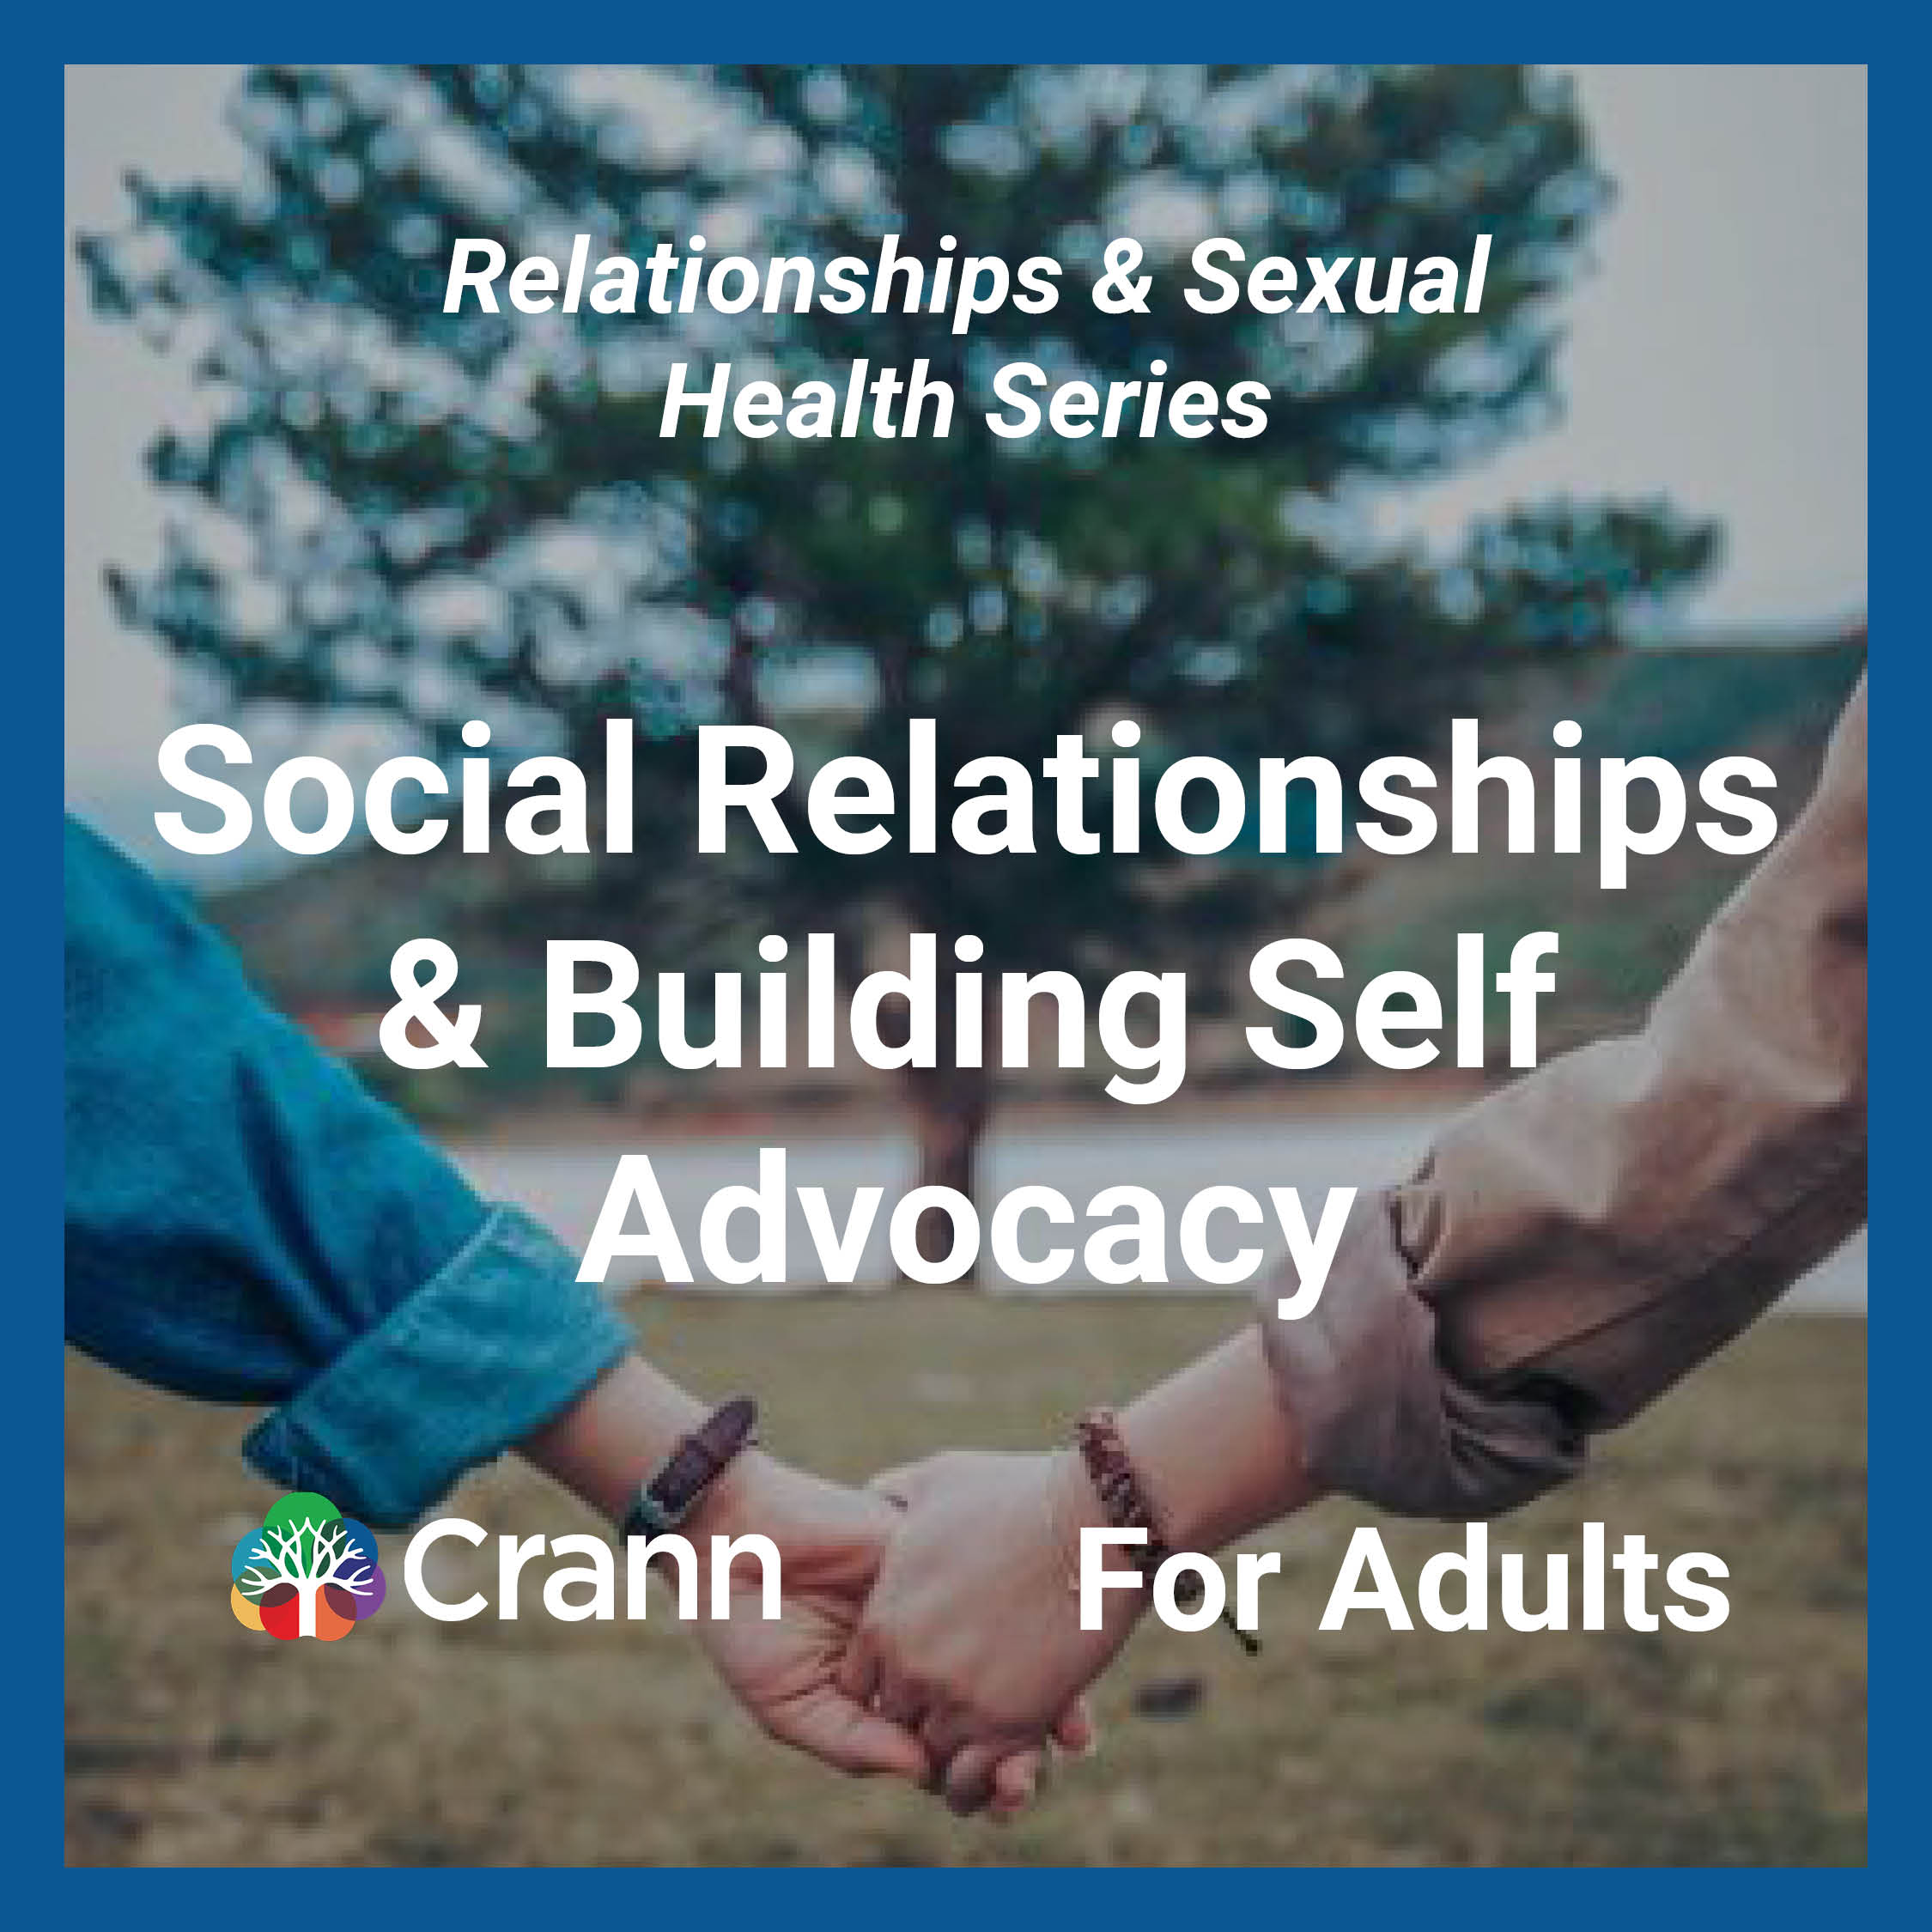 social relationships and building self advocacy banner image - text overlayed on image of two hands being held in front of a tree